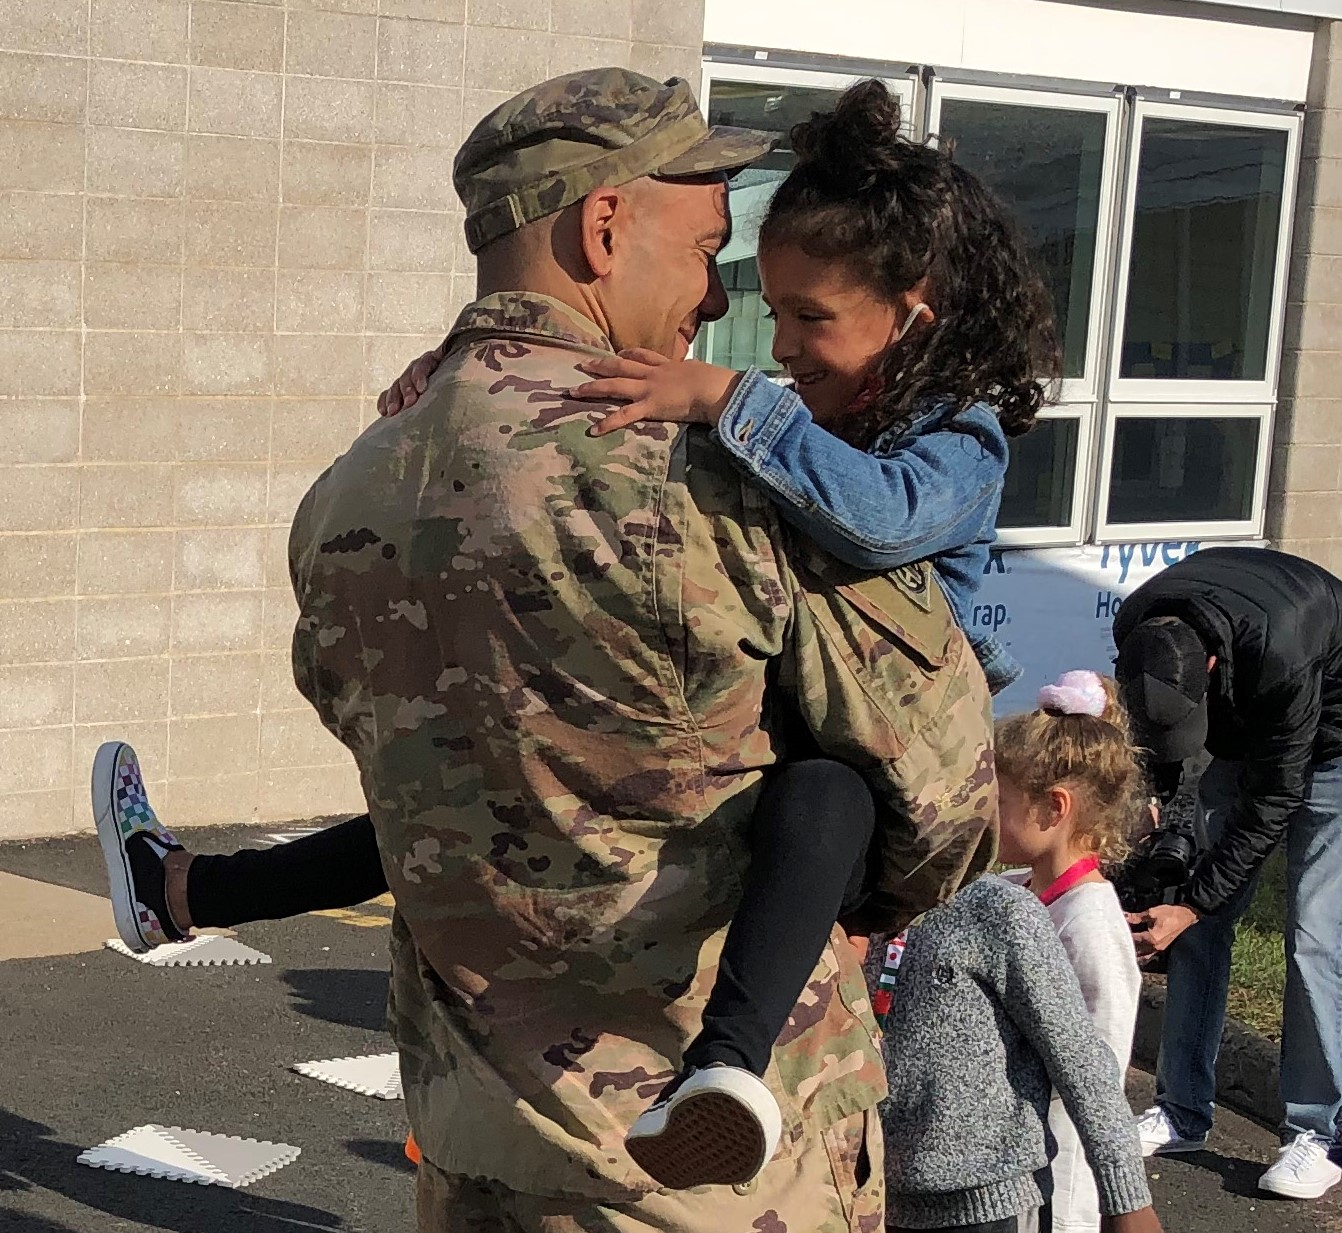 Connecticut Army National Guard Sgt. First Class David Flint returned from deployment Sunday and surprised his daughter Ella Monday morning at Lake Street School, where she is a kindergartener.